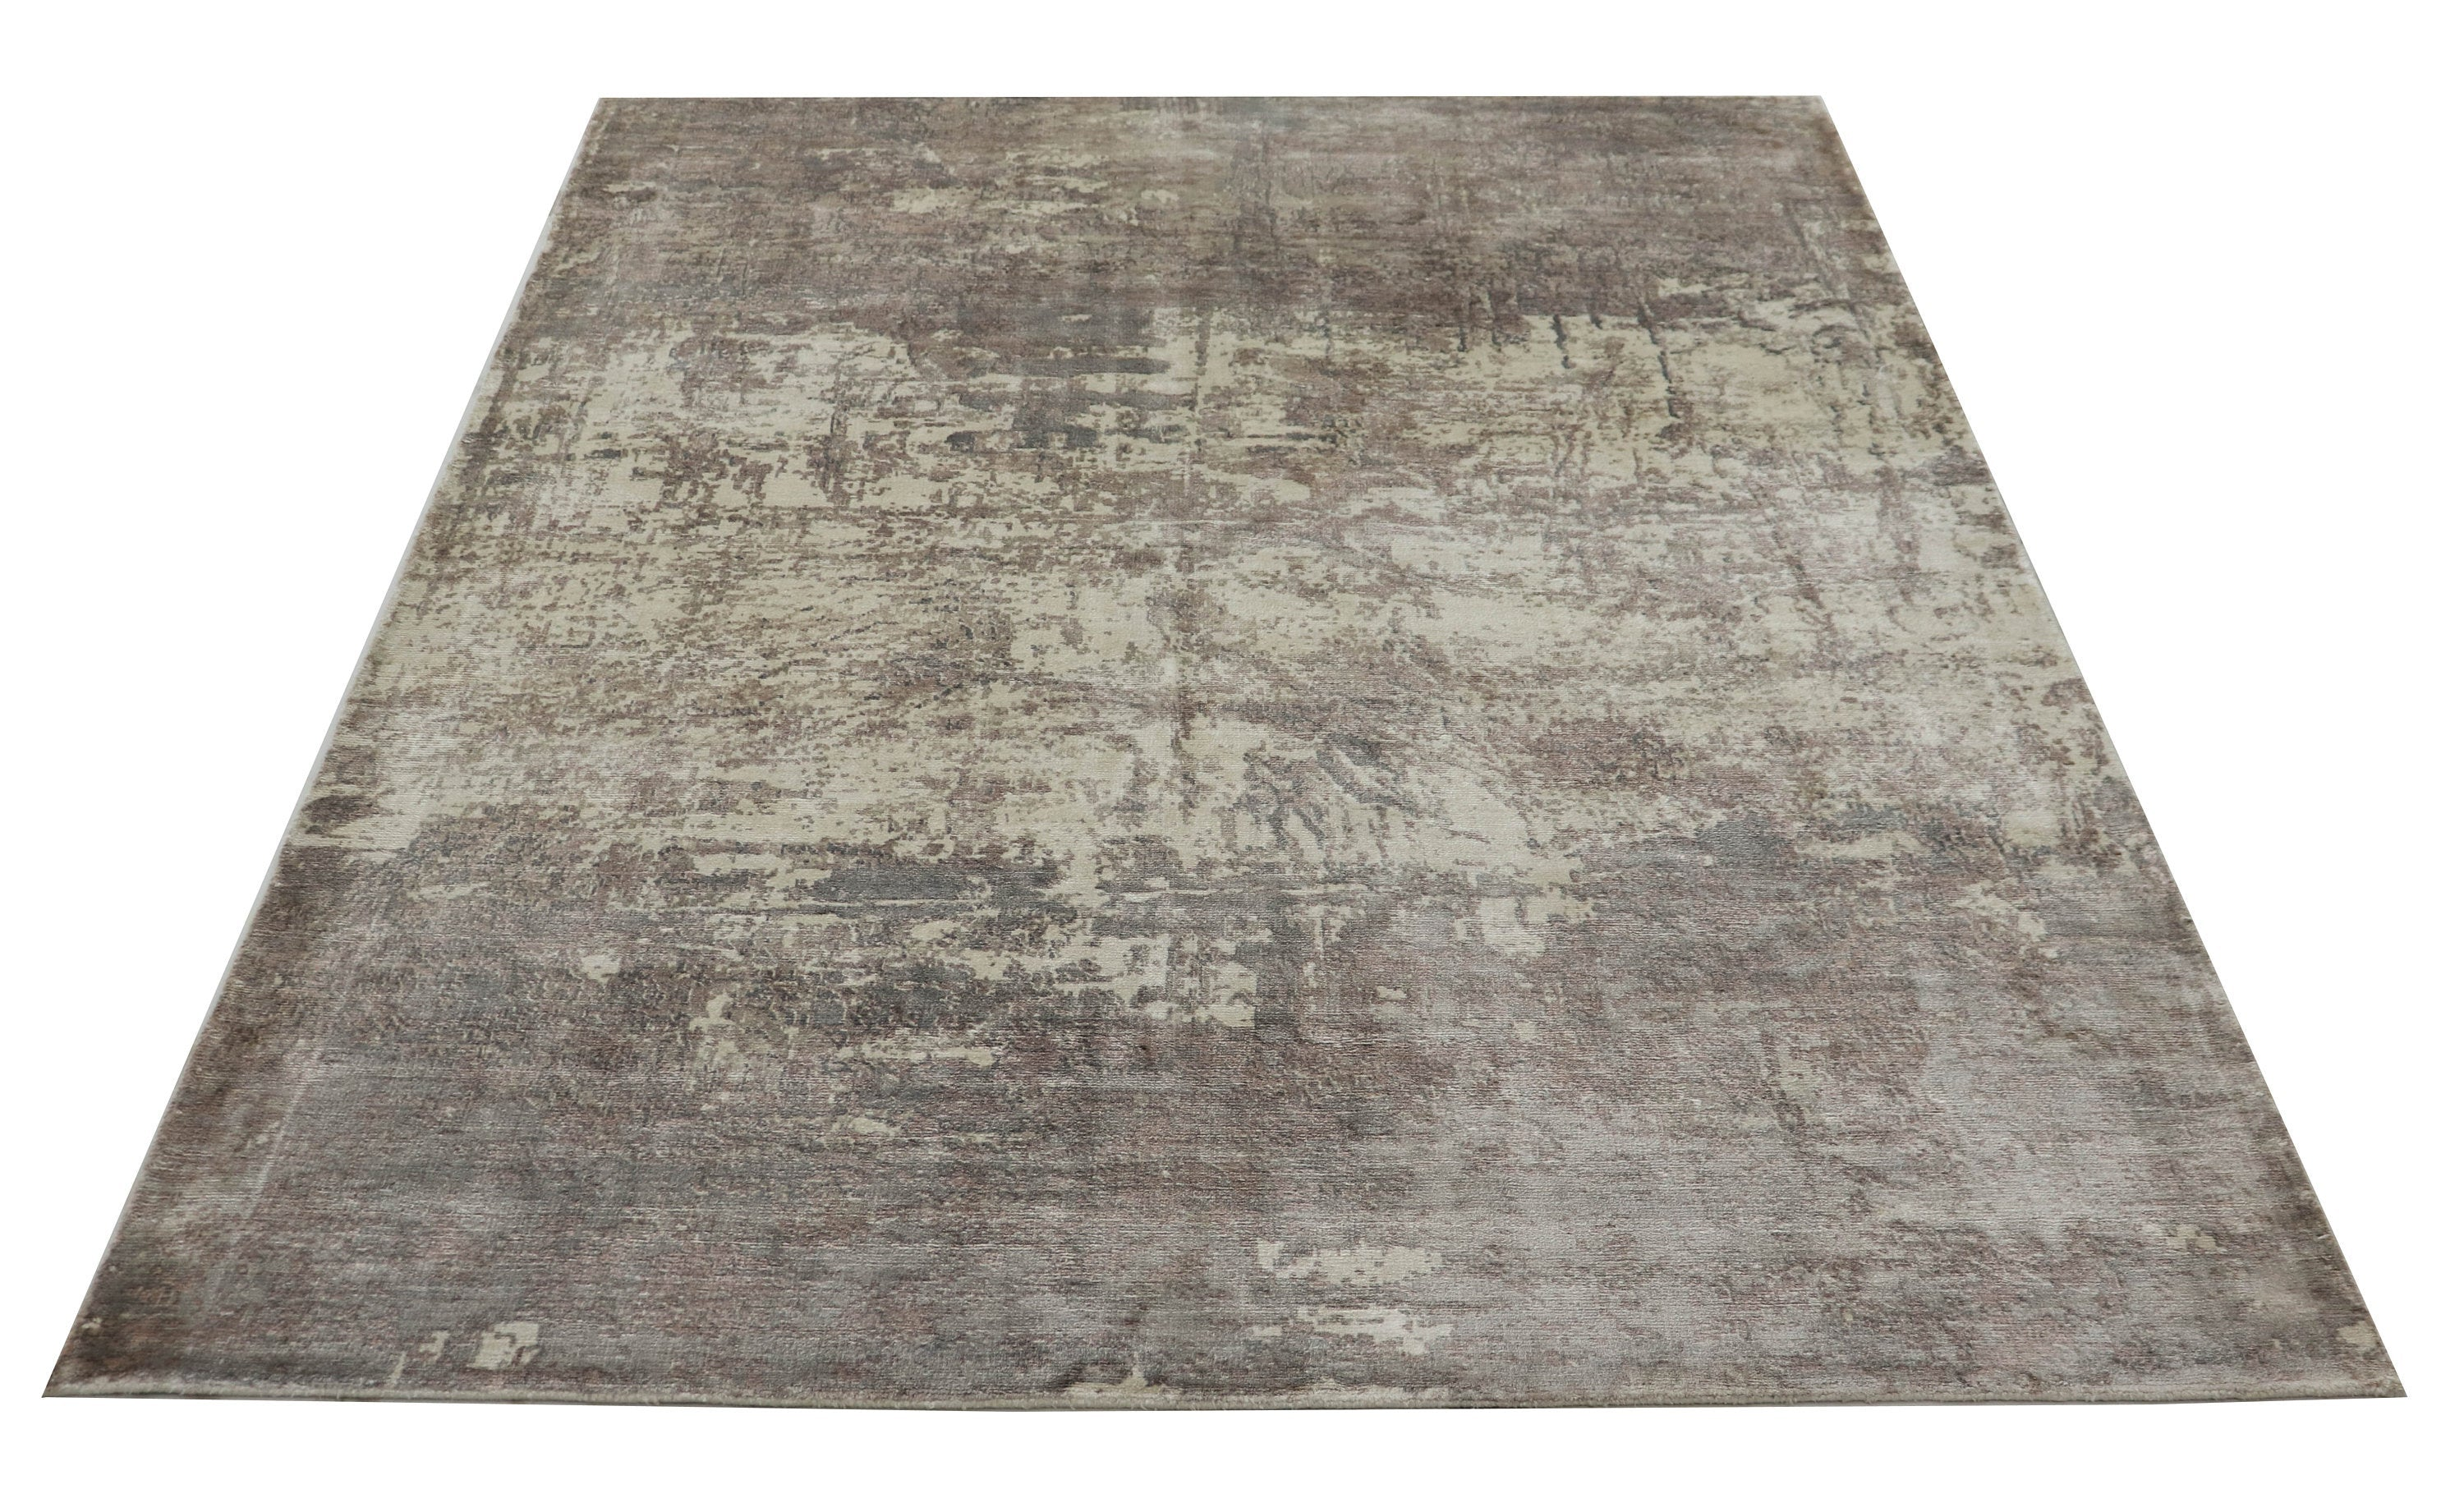 "Handwoven Faded Modern Silk Area Rug ≡ Vintage like Turkish Faded Muted color Carpet ≡ Antique Tribal Area Rug 5'3"" X 7'7"" Gray Rug  D2752"